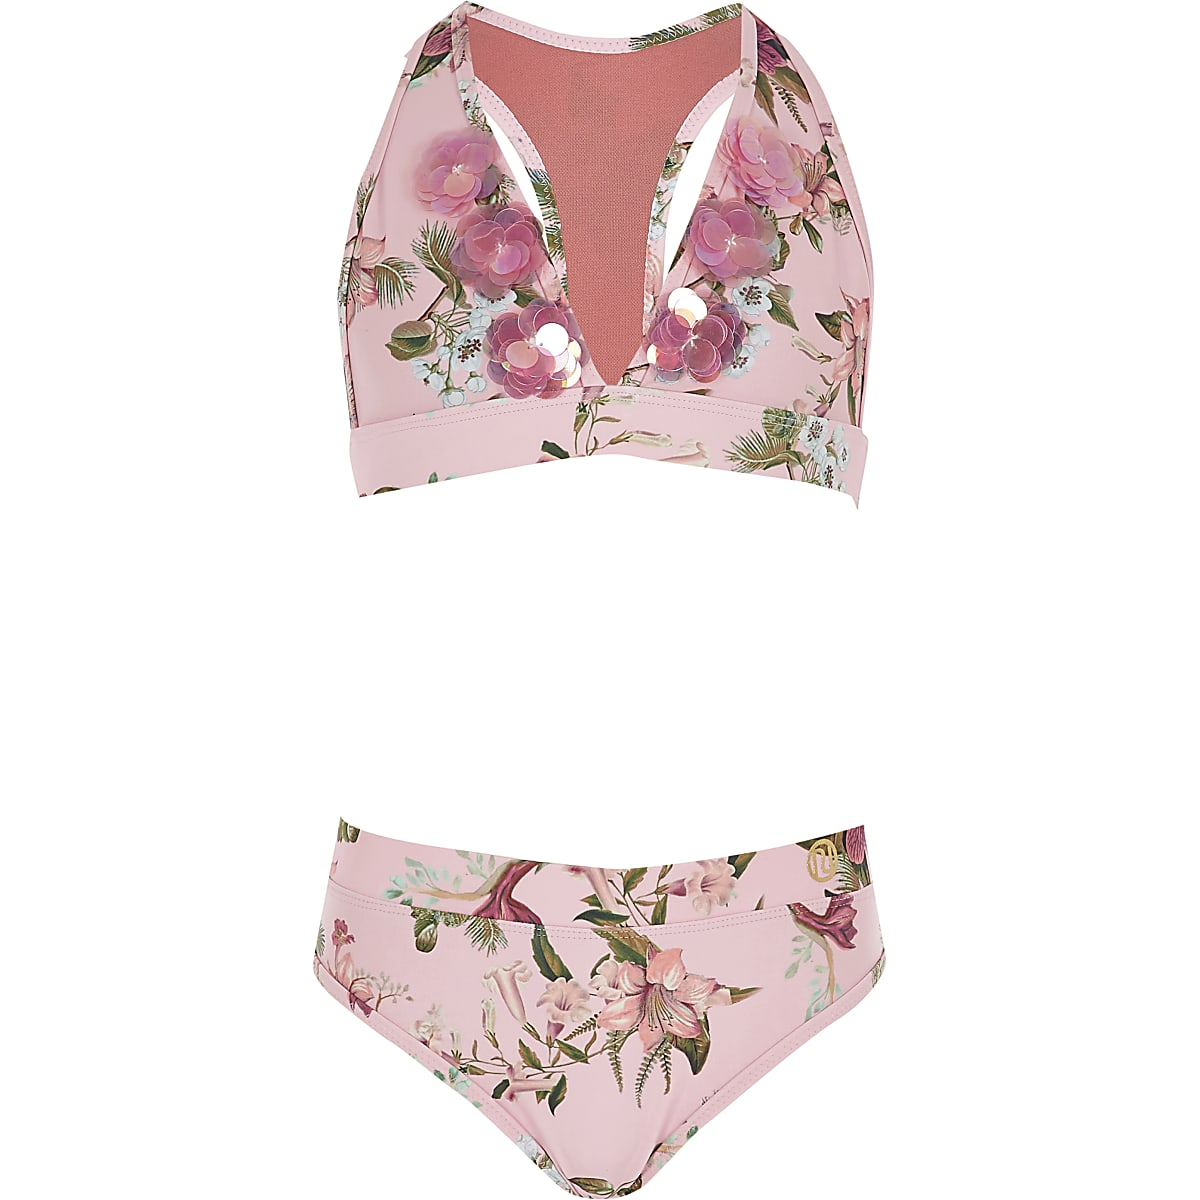 Girls pink floral print triangle bikini set